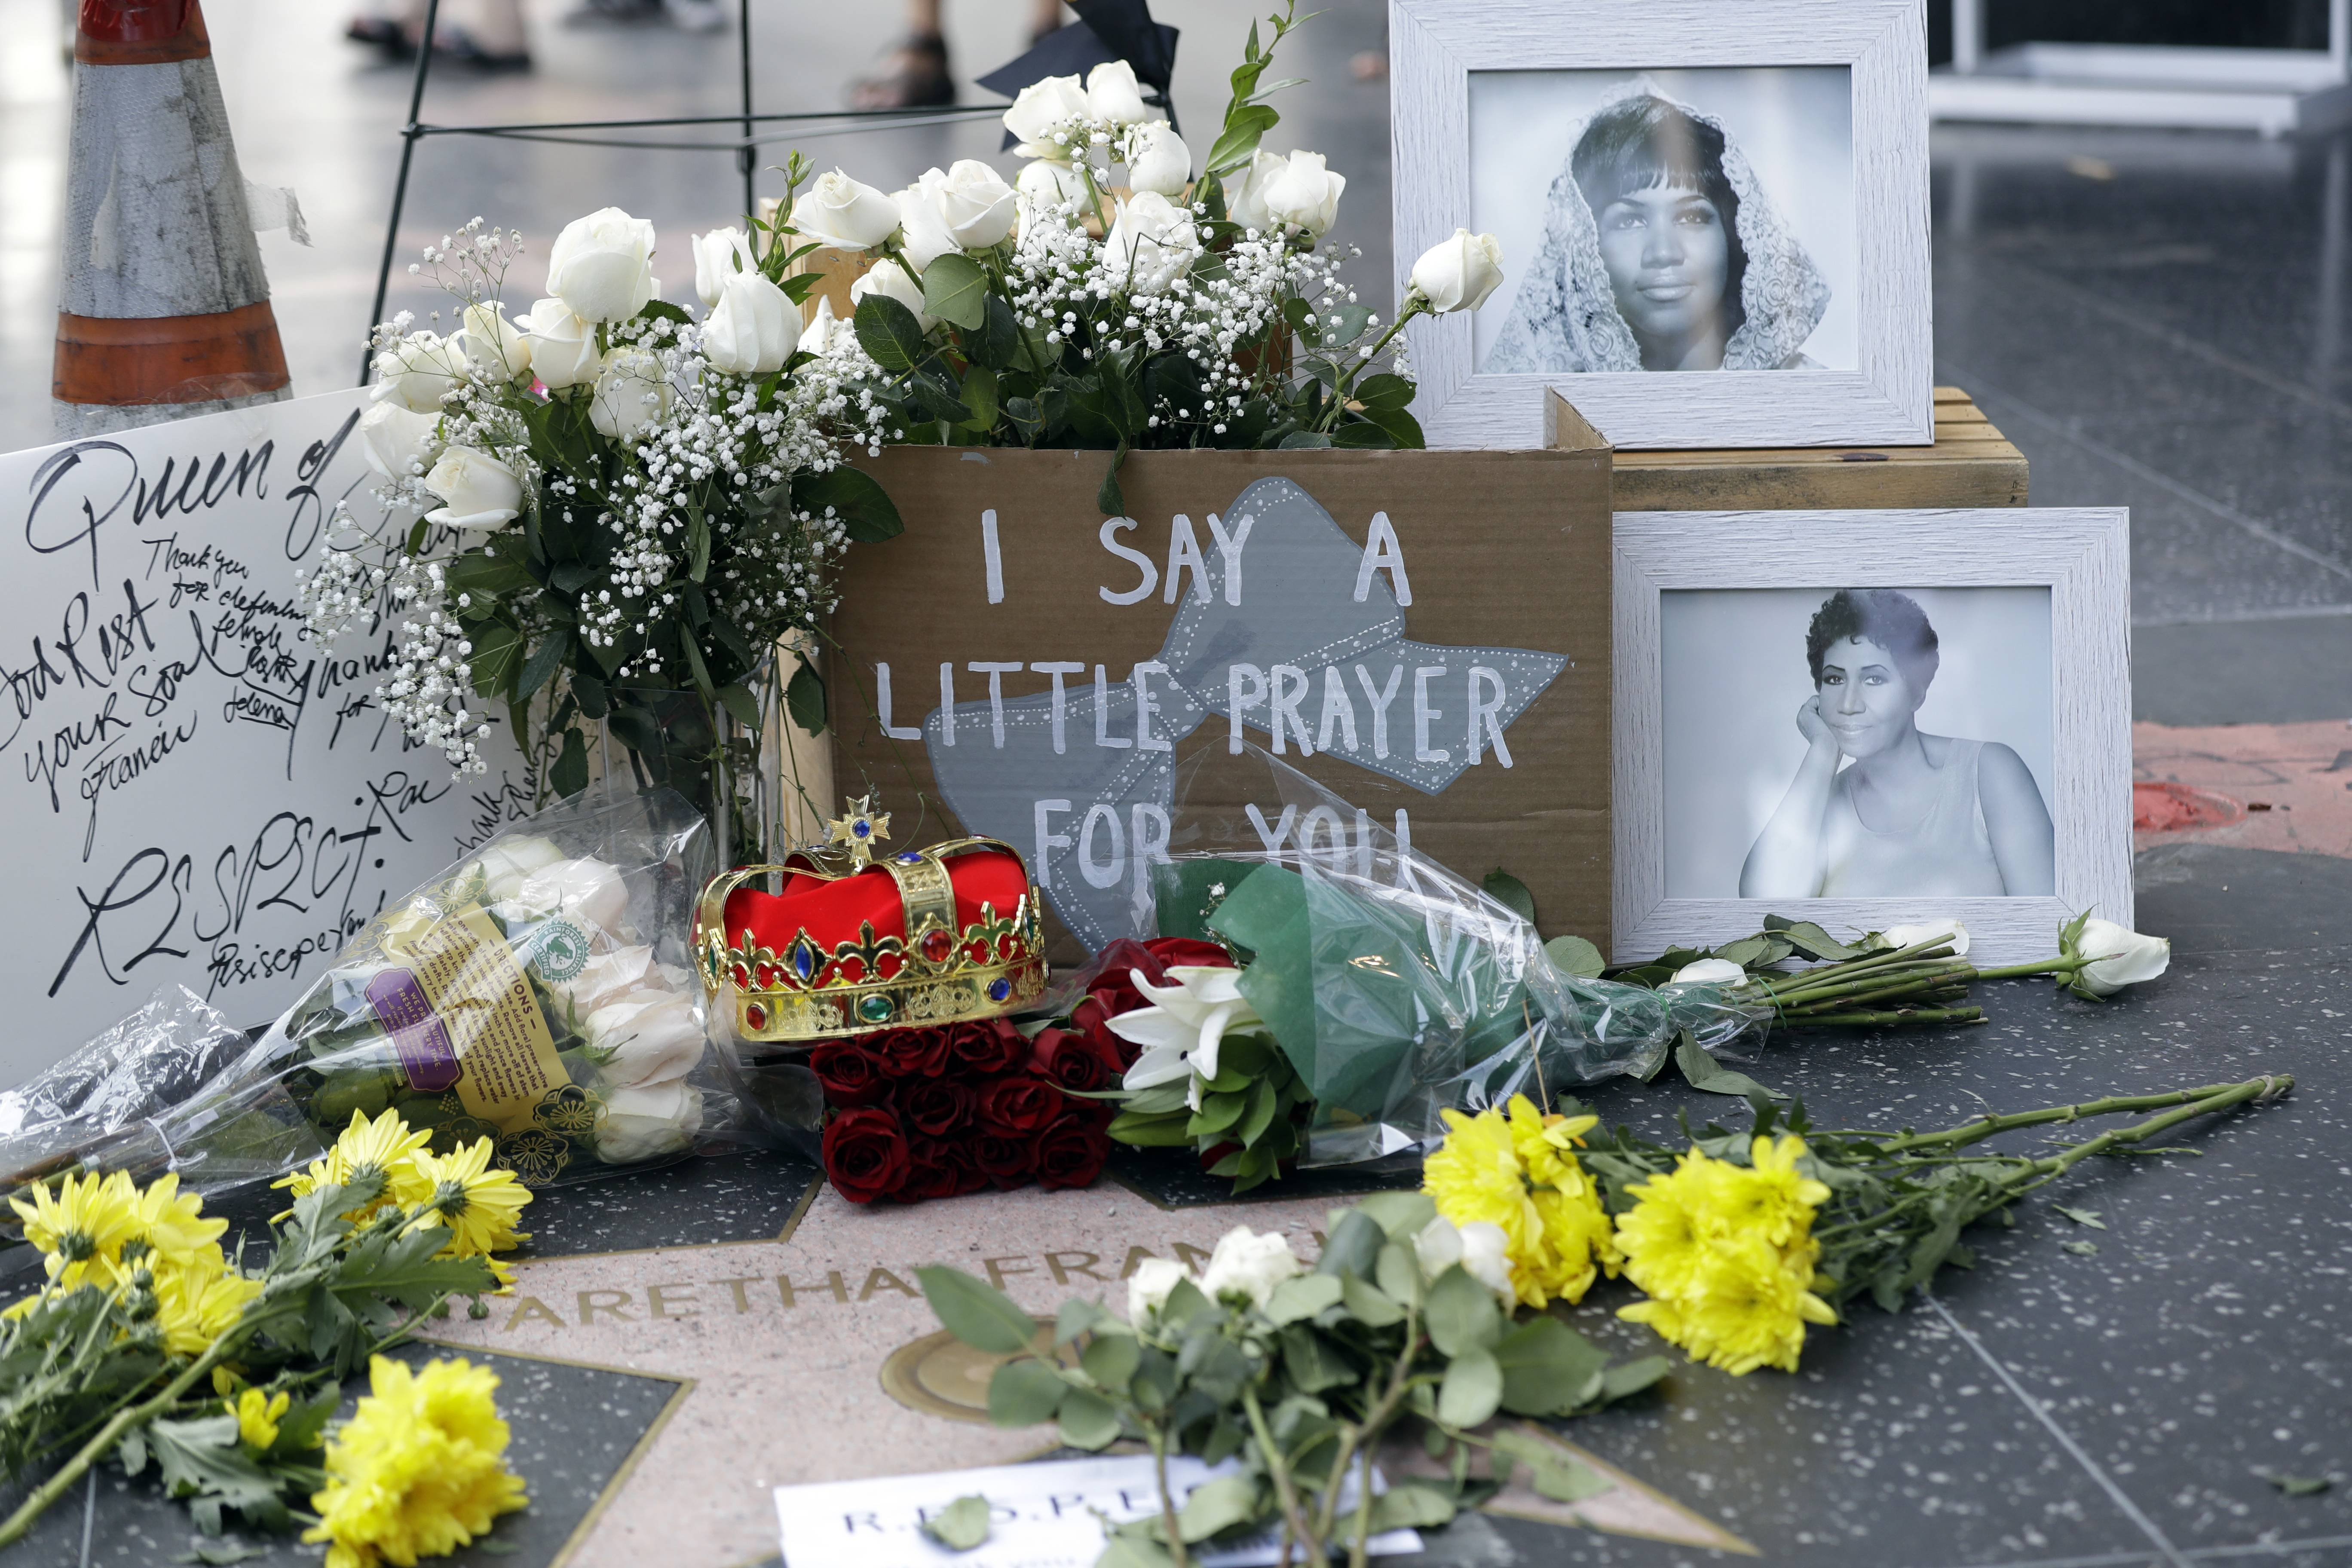 Flowers and signs are placed on Aretha Franklin's star at the Hollywood Walk of Fame Thursday, Aug. 16, 2018, in Los Angeles. Franklin died Thursday at 76. She was born and rose to fame during the segregation era and went on to sing at the inauguration of the first black president, often used her talent, fortune and platform to inspire millions of black Americans and support the fight for racial equality.